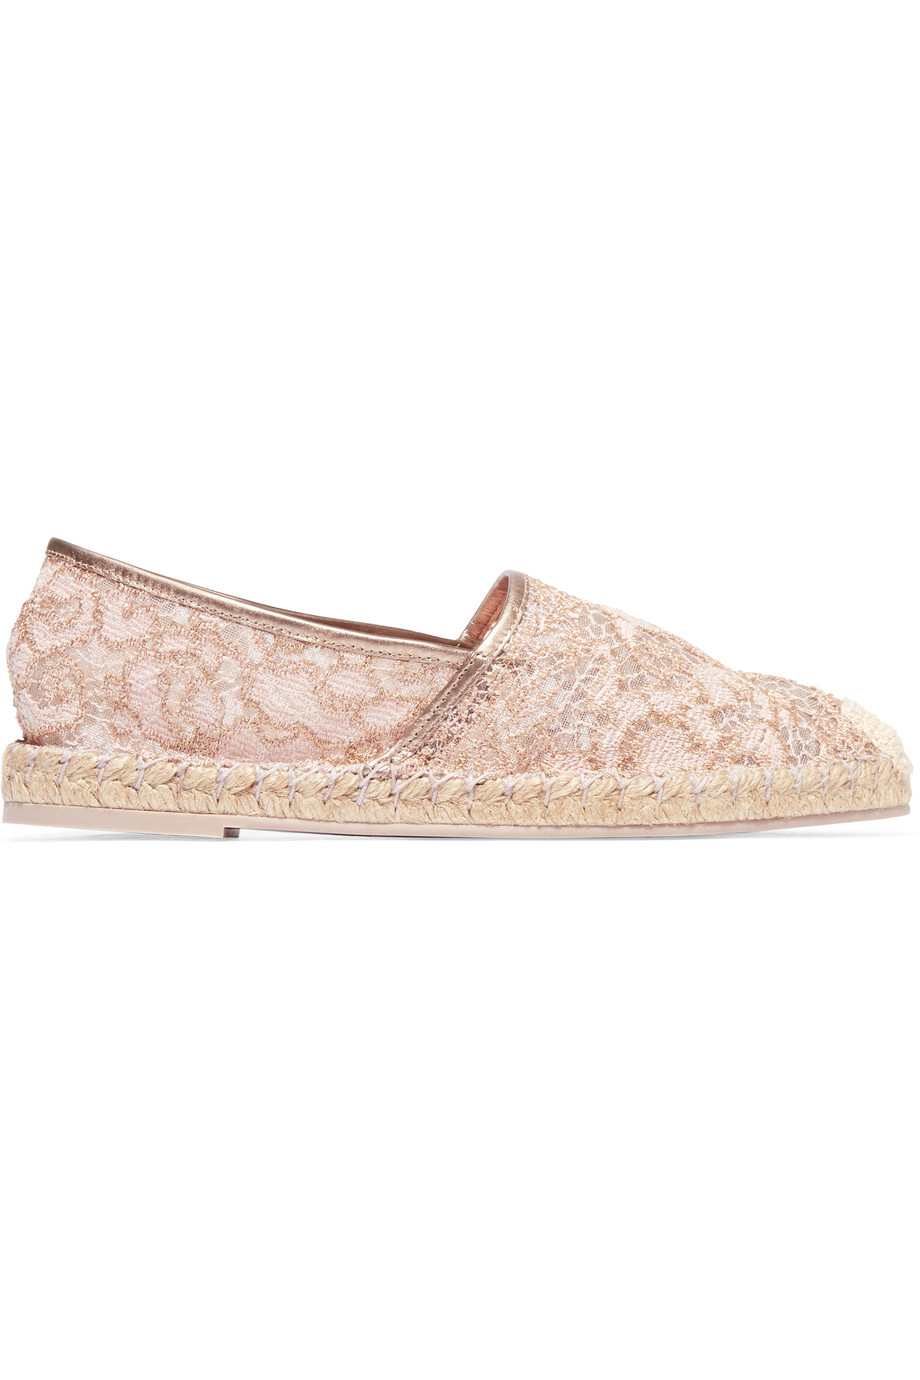 Valentino Leather-Trimmed Lace Espadrilles, Blush, Women's US Size: 7.5, Size: 38